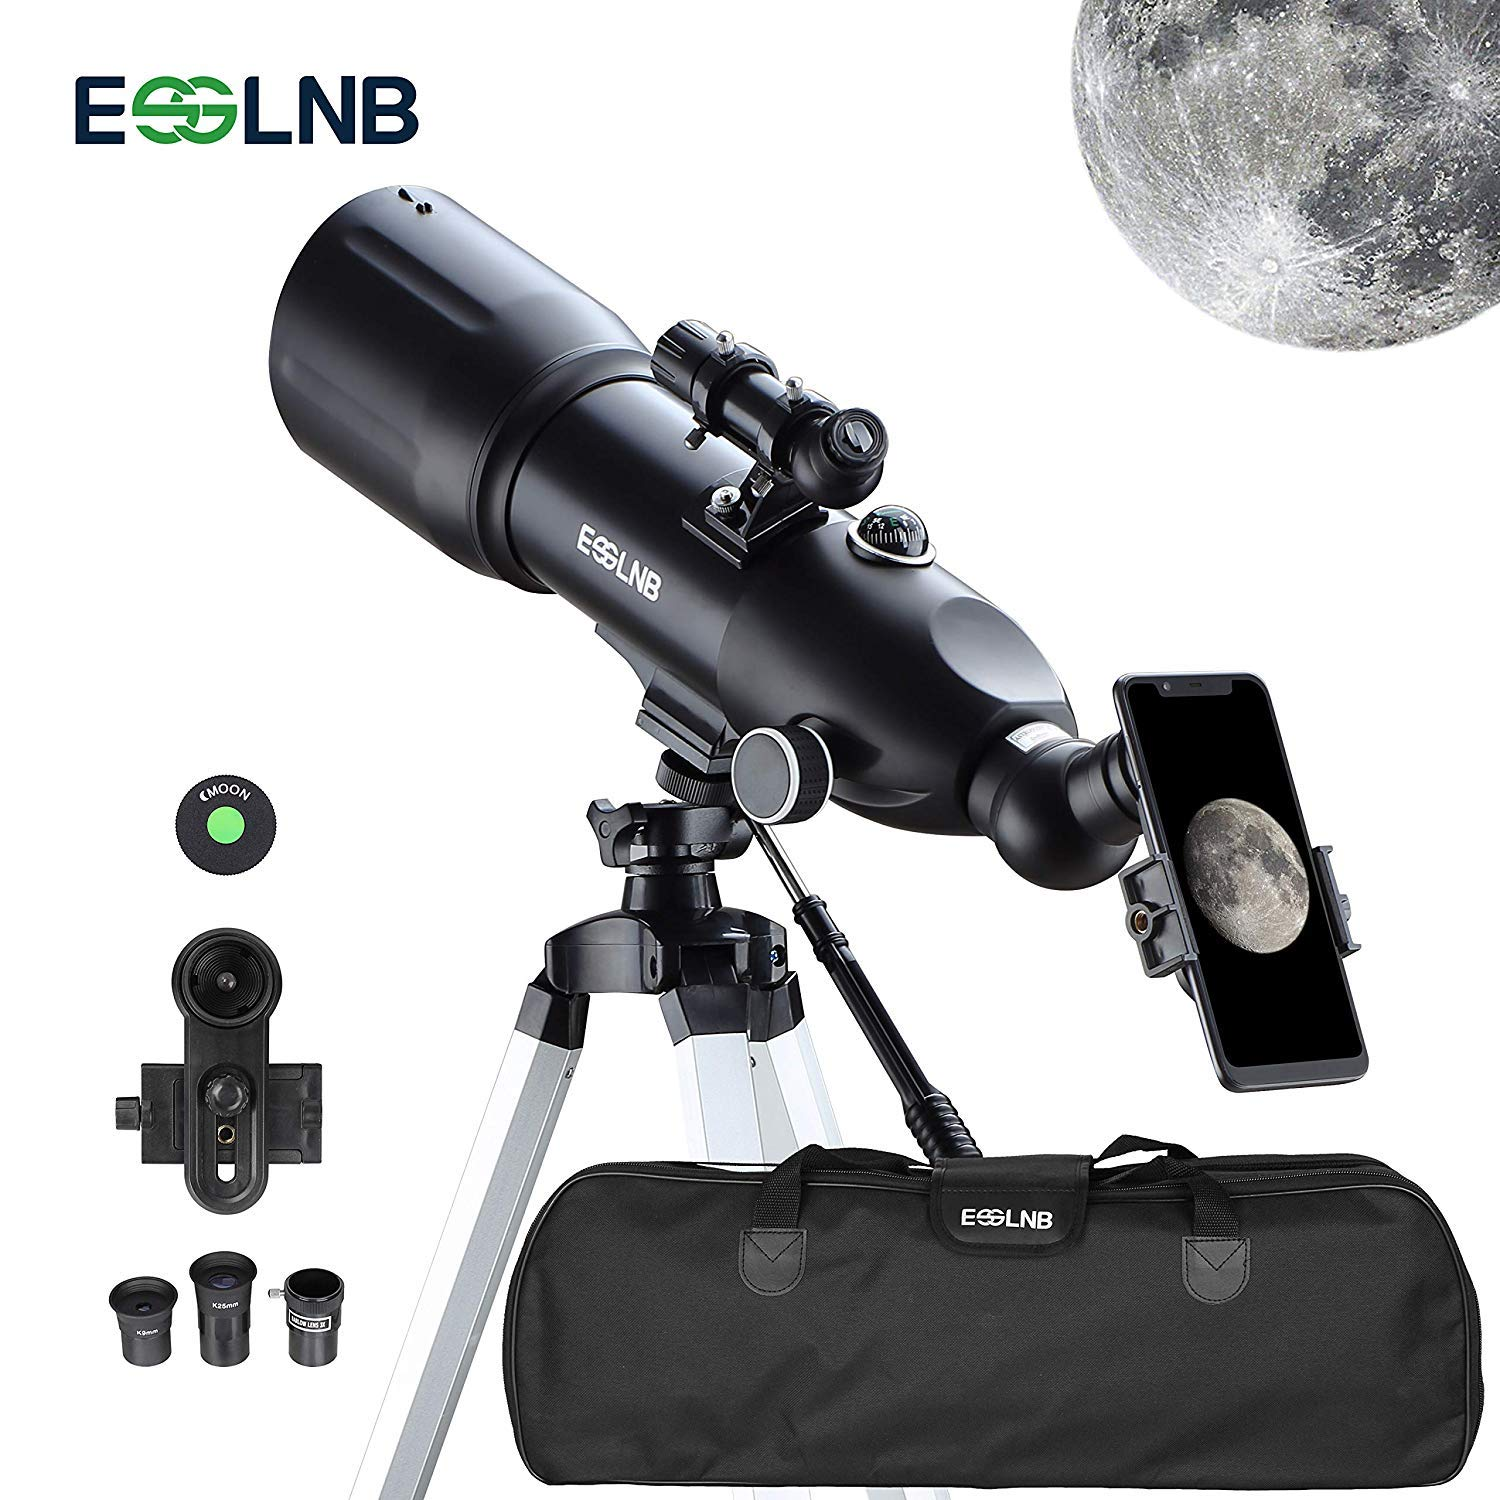 ESSLNB Telescopes for Adults Kids Astronomy Beginners 80mm Astronomy Telescopes with 10X Phone Mount Refractor Telescope Tripod and Case by ESSLNB